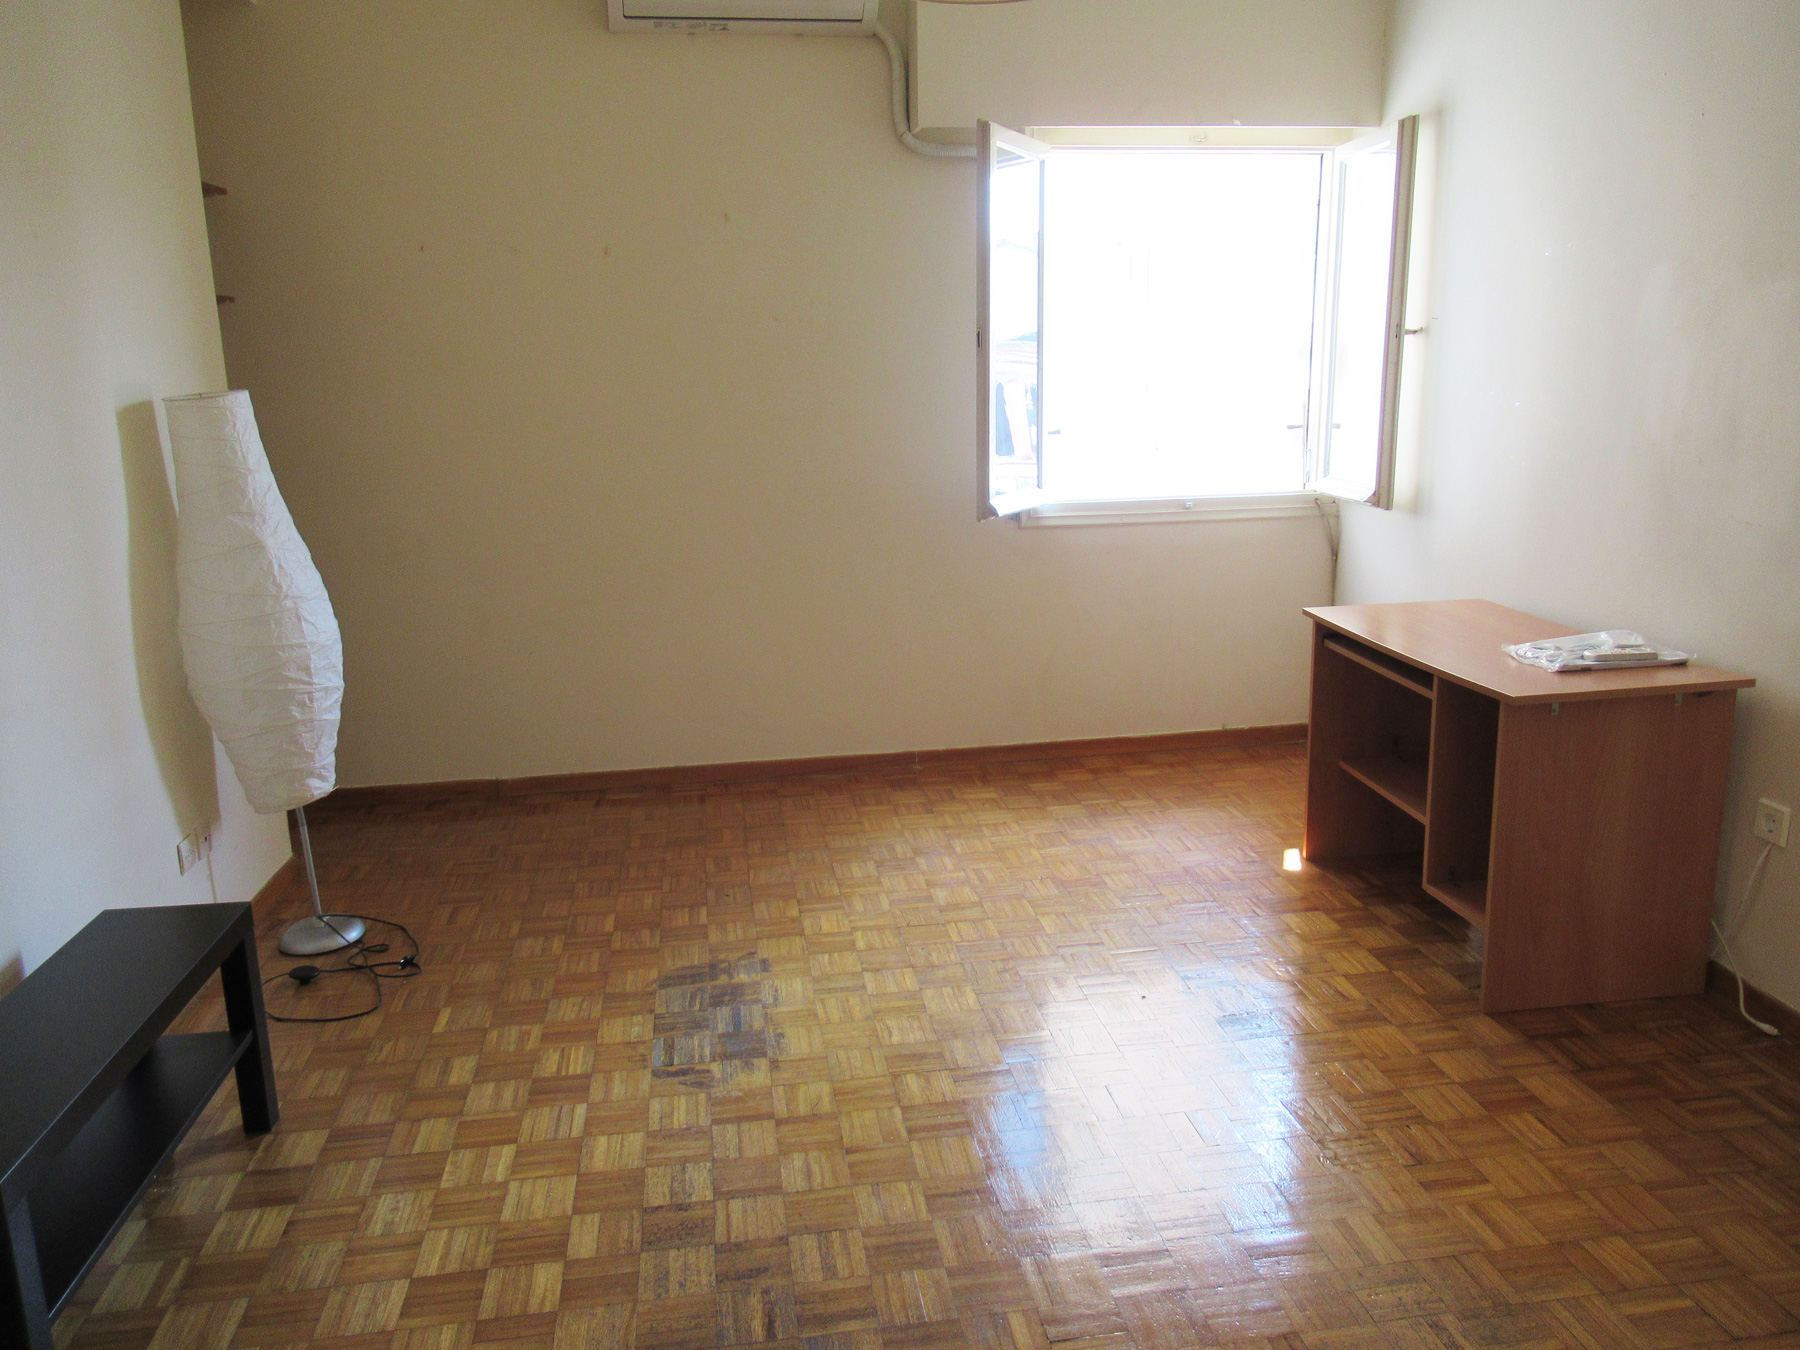 For rent 1 bedroom apartment of 60 sq.m. on the 2nd floor in the center of Ioannina